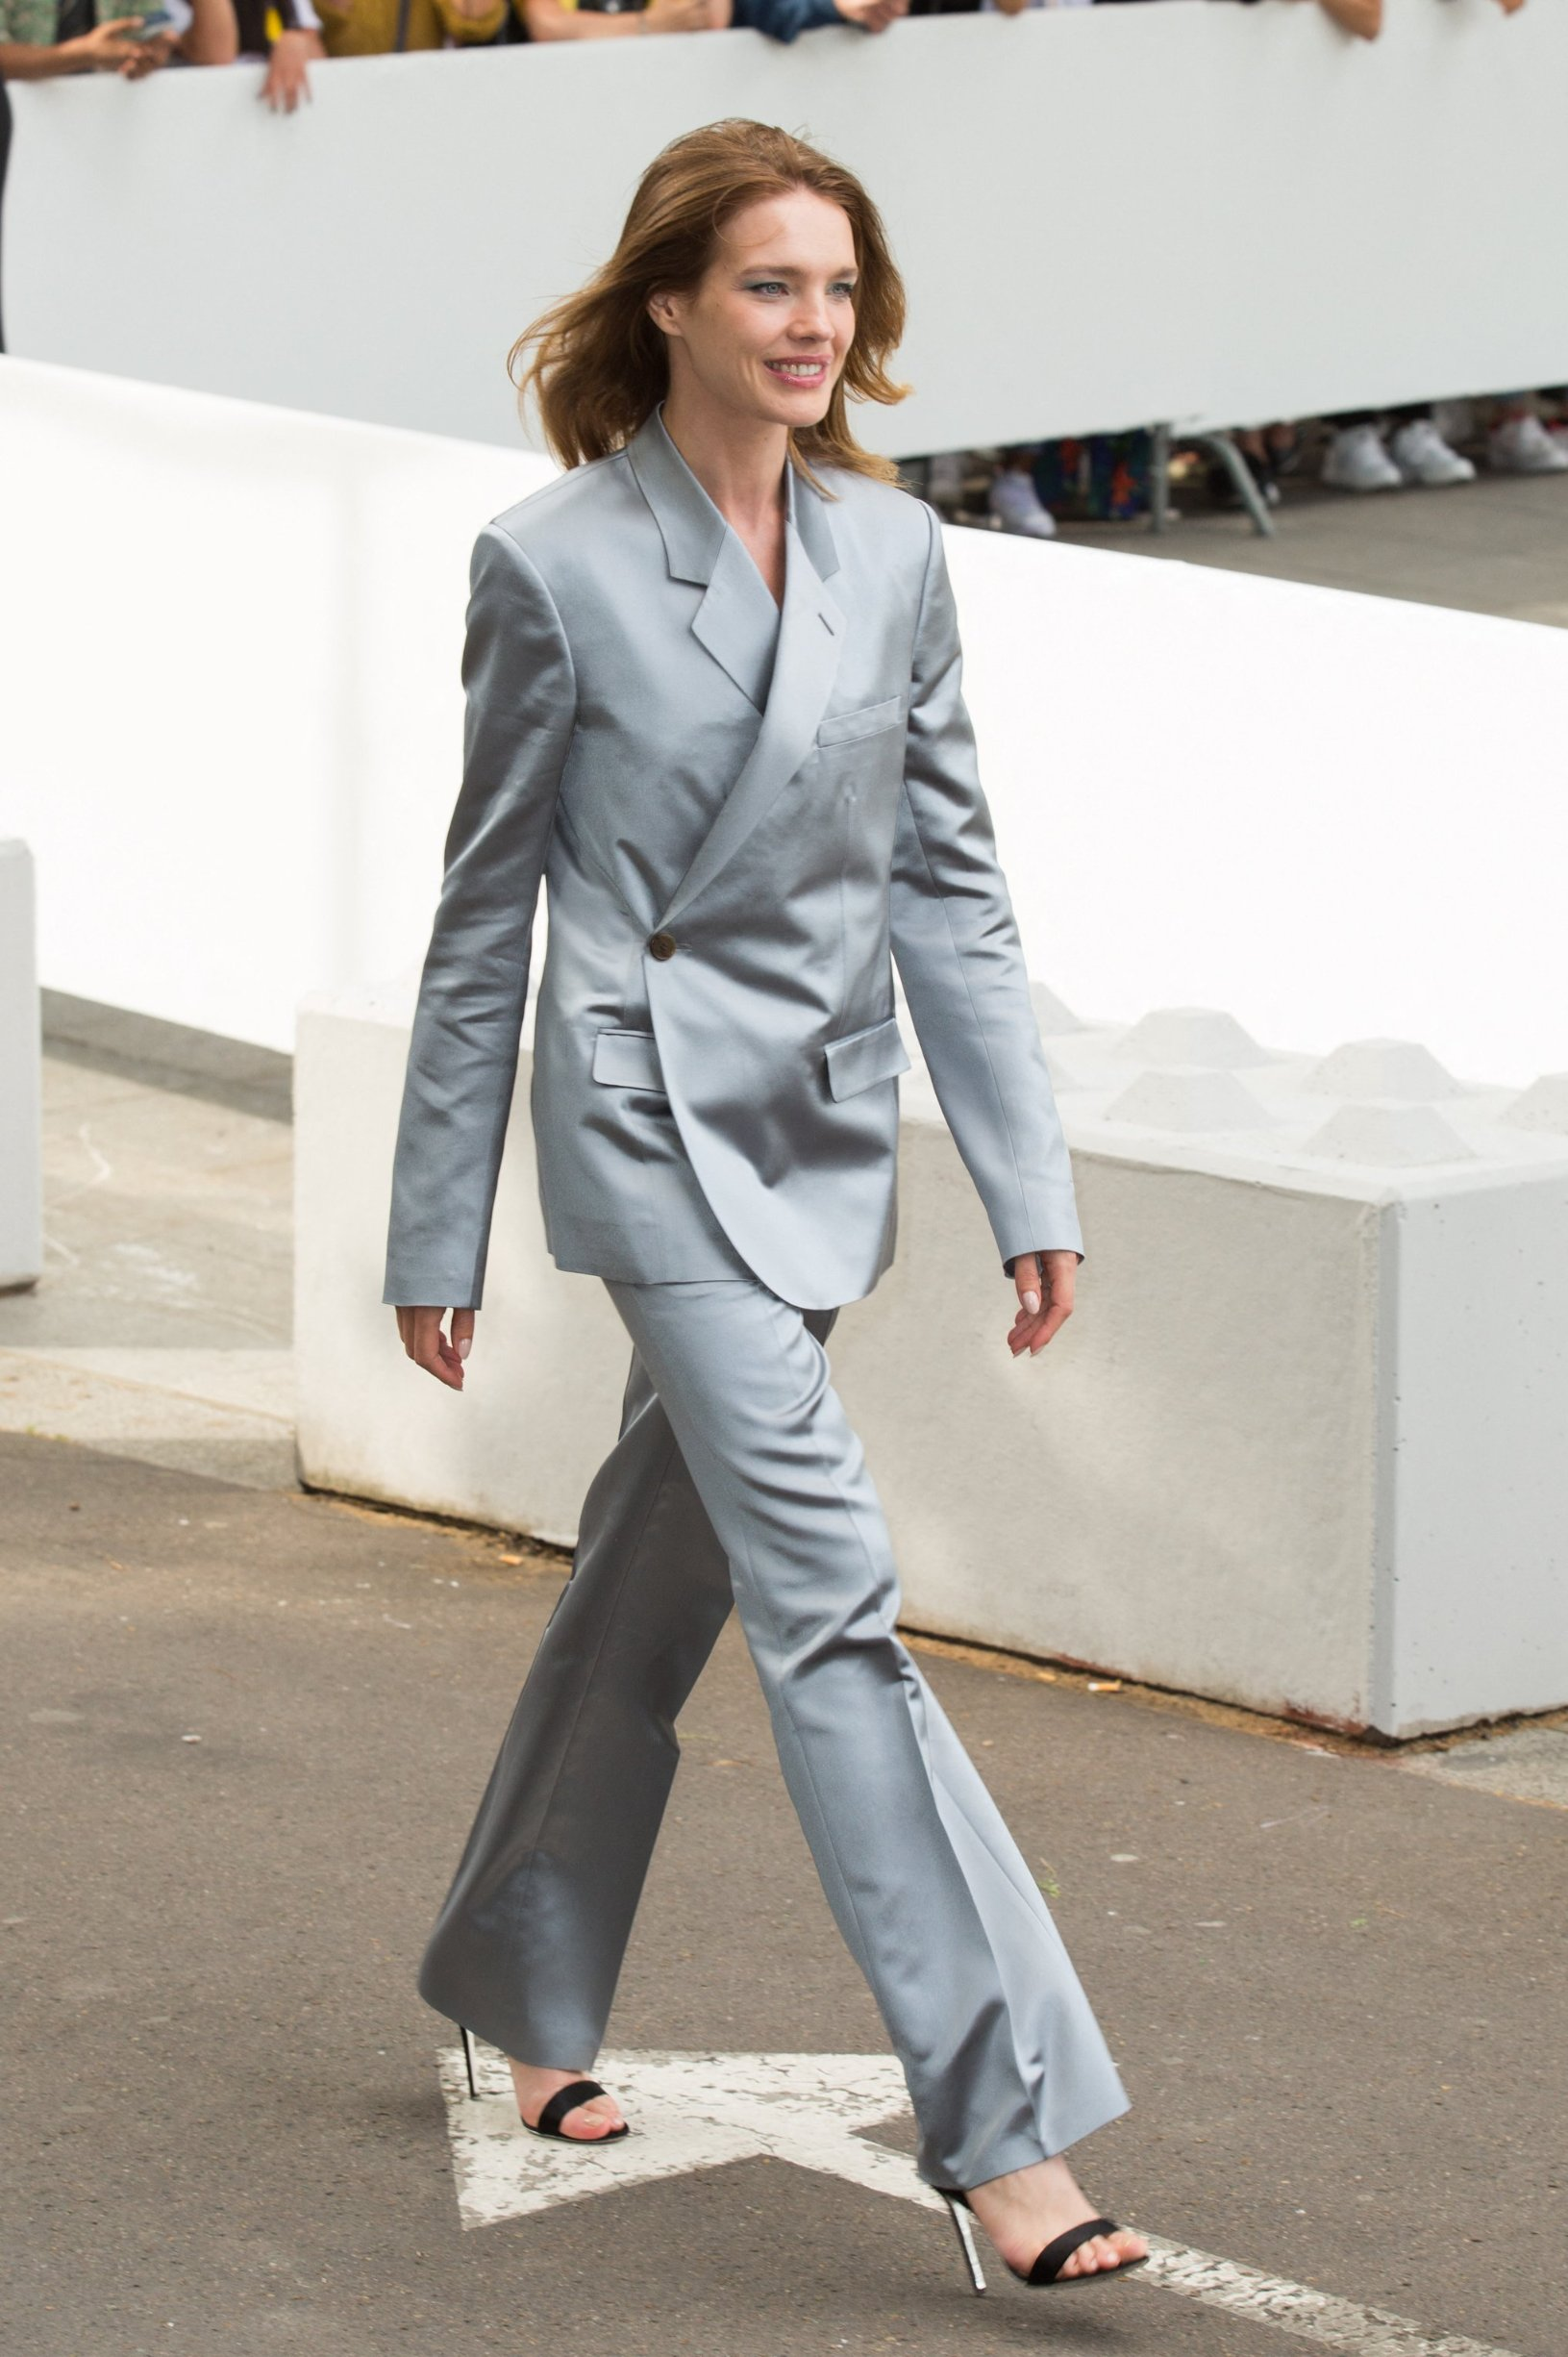 Natalia Vodianova arrives at Dior fashion Show during Menswear Spring/Summer 2020 on June 21, 2019 in Paris, France., Image: 450496744, License: Rights-managed, Restrictions: , Model Release: no, Credit line: Profimedia, Abaca Press